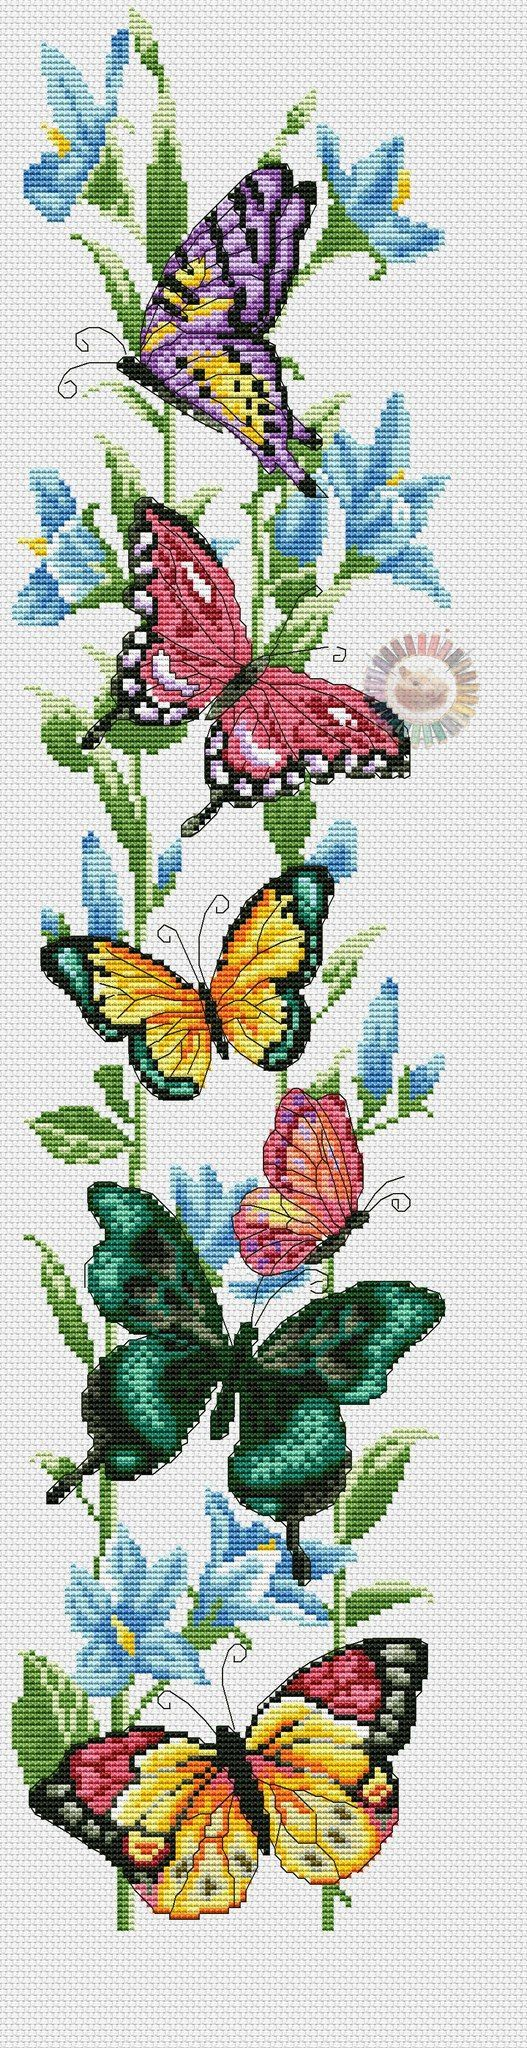 Cross stitch butterflies and chart. Cross stitch butterflies. Colorful, realistic w/charts. cs625219.vk.me v625219372 72a7 6N5EeGdWdMw.jpg